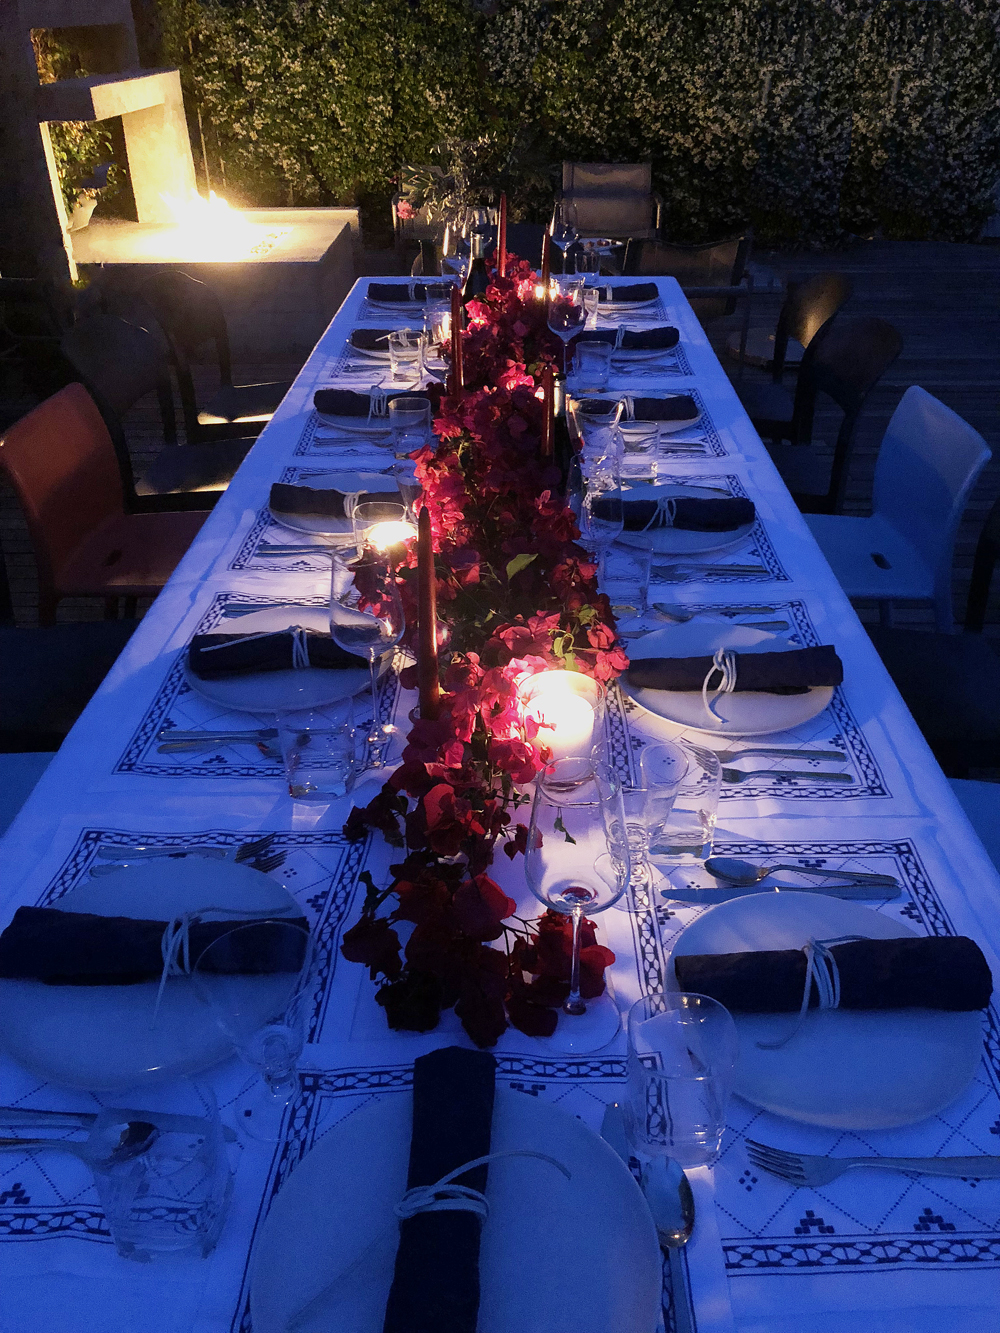 Candlelit Greek dinner party outdoor al fresco blue and white bougainvillea runner